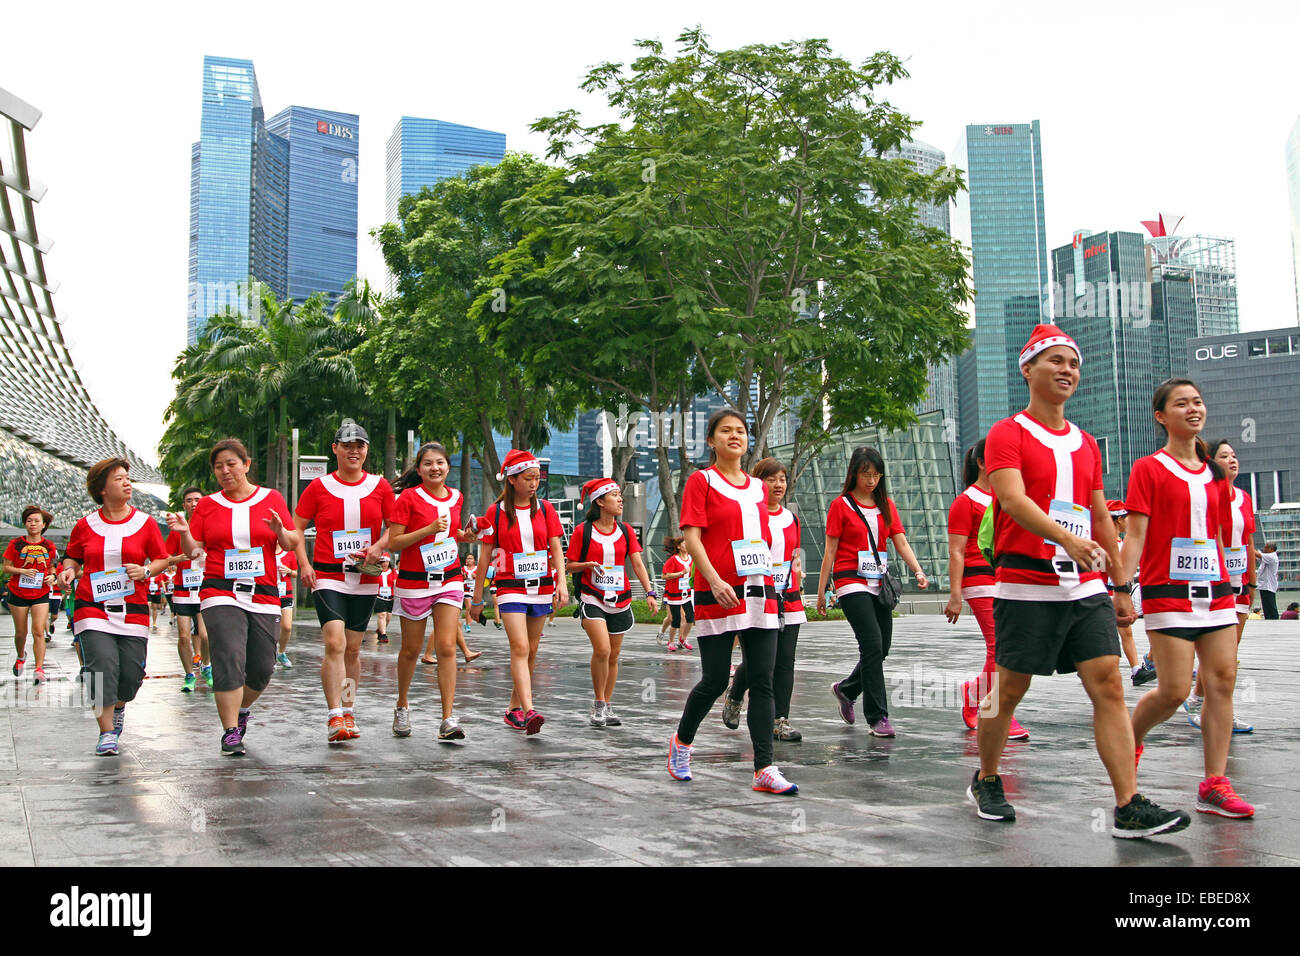 Singapore. 29th November, 2014. Runners take part in the very first Santa Run for Wishes, Singapore Credit:  Maria Stock Photo